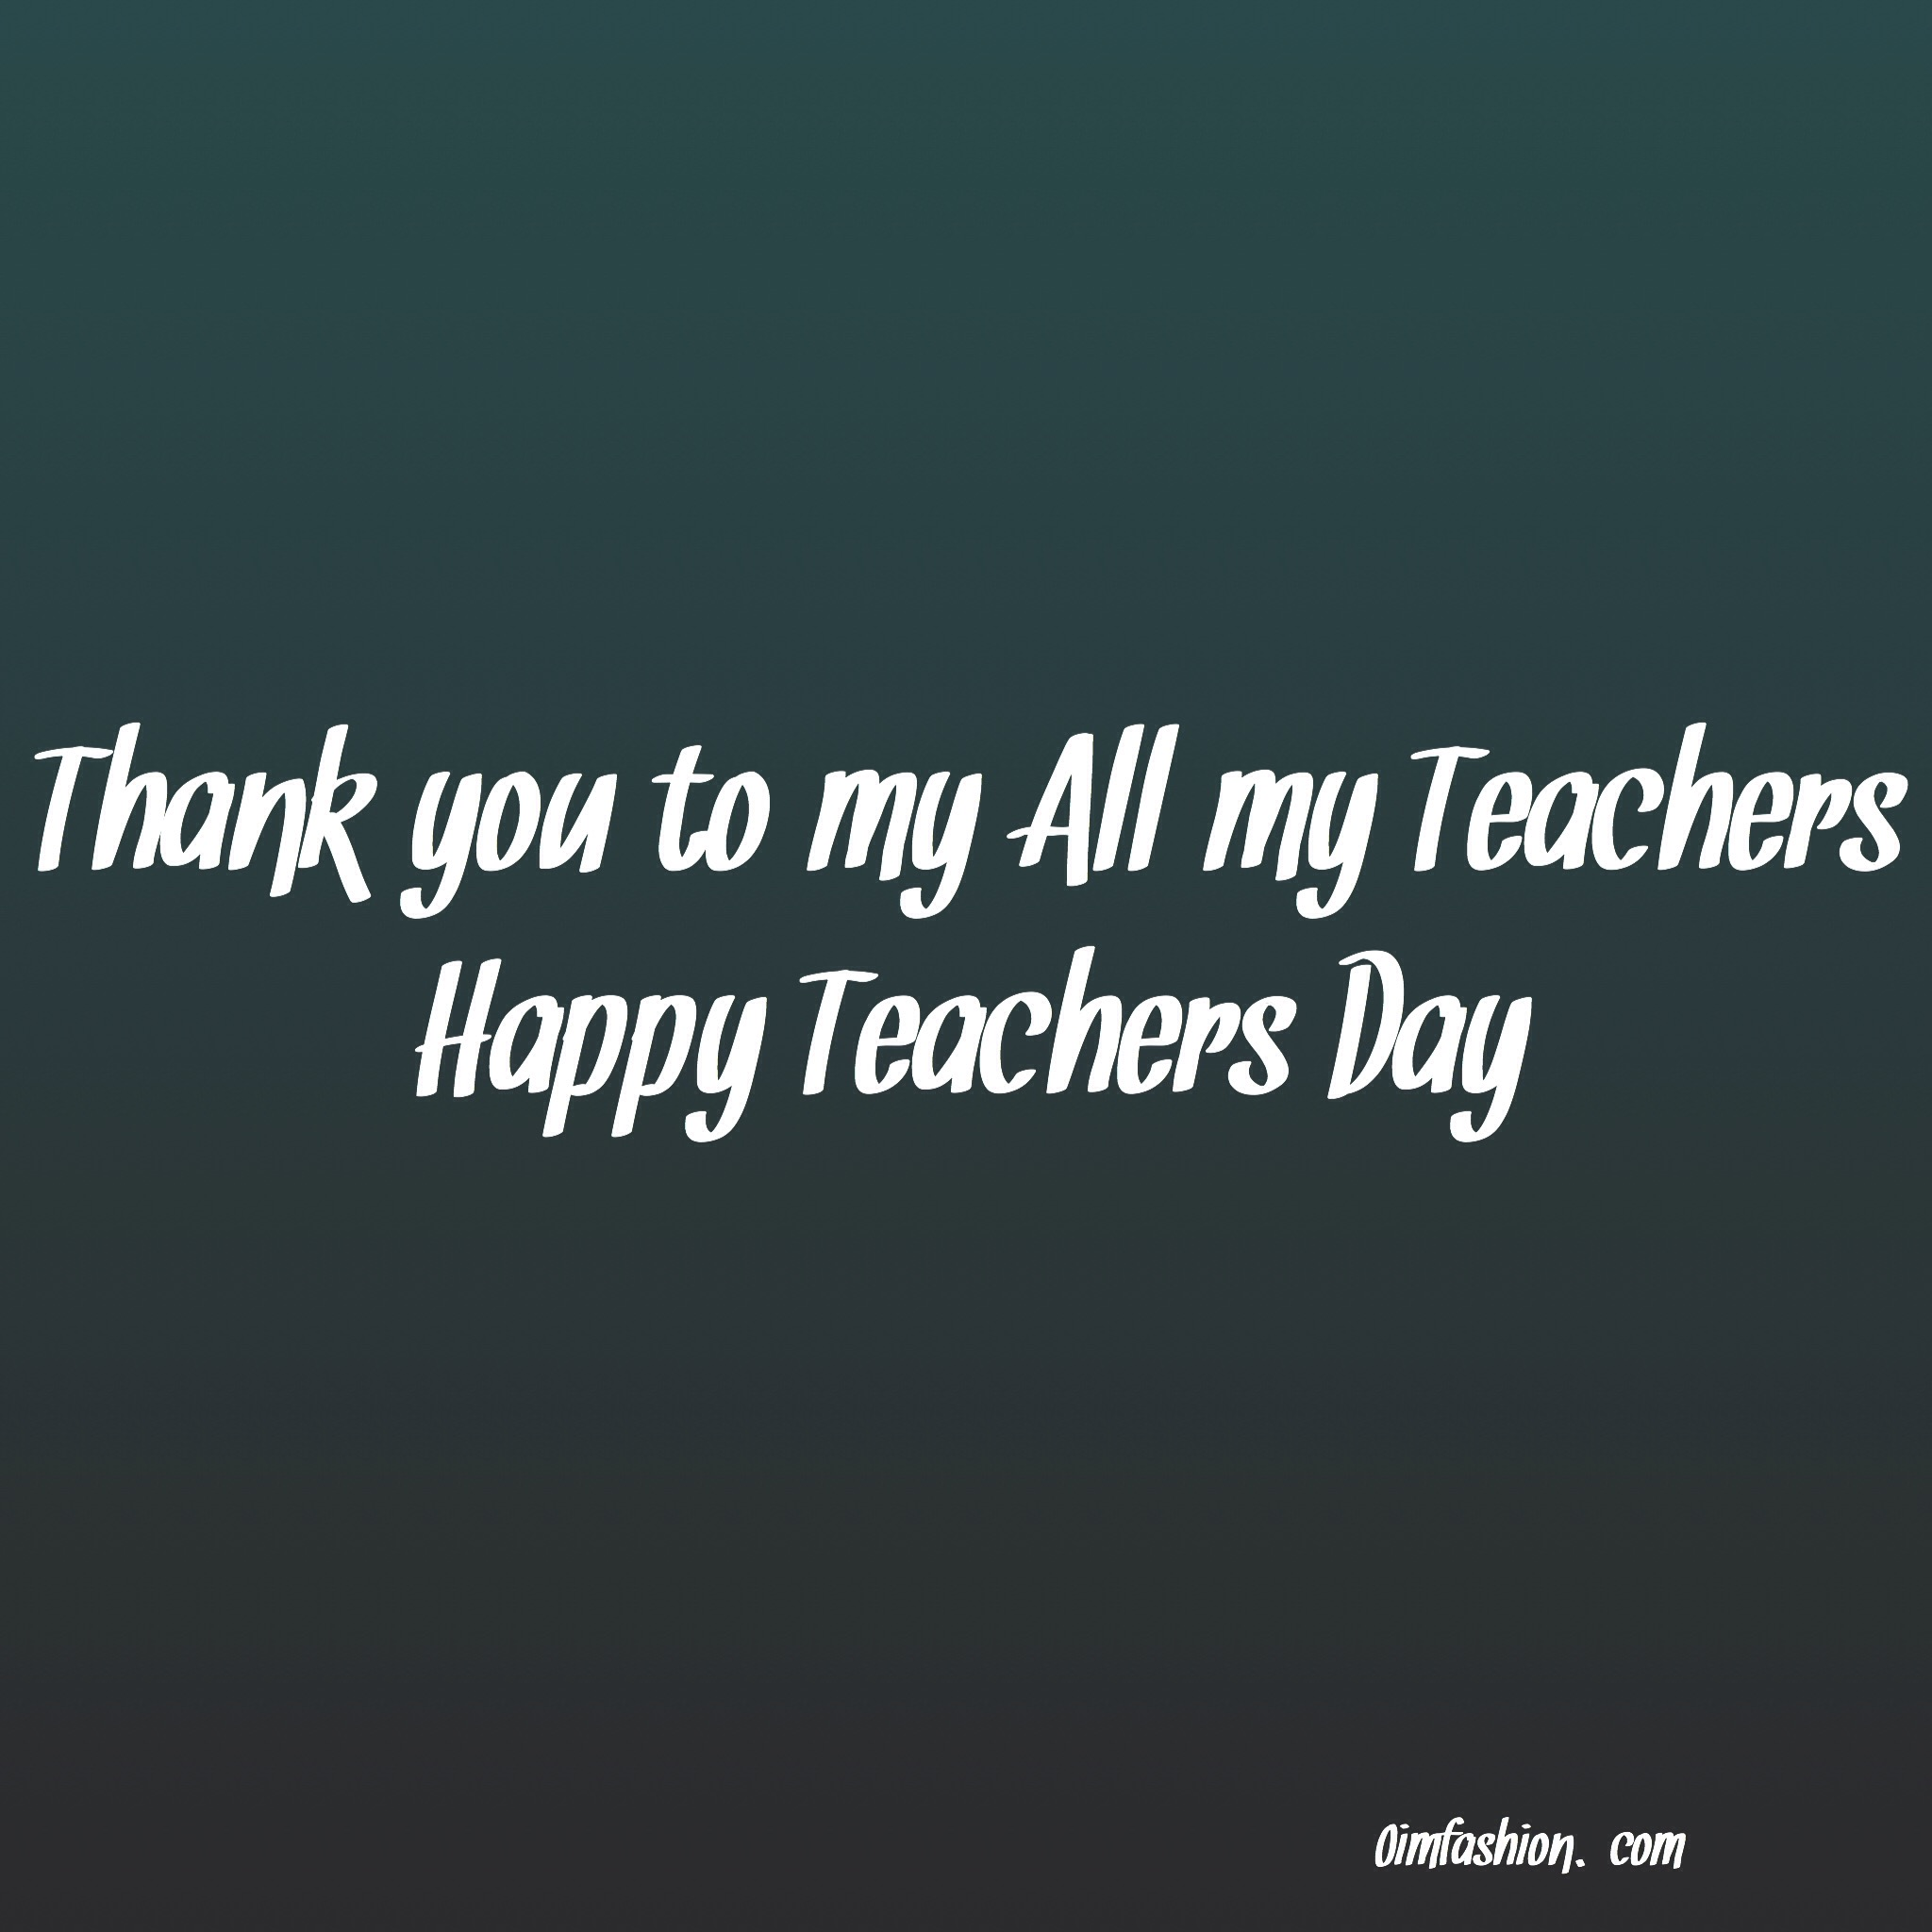 30 hd happy teachers day wallpapers altavistaventures Choice Image